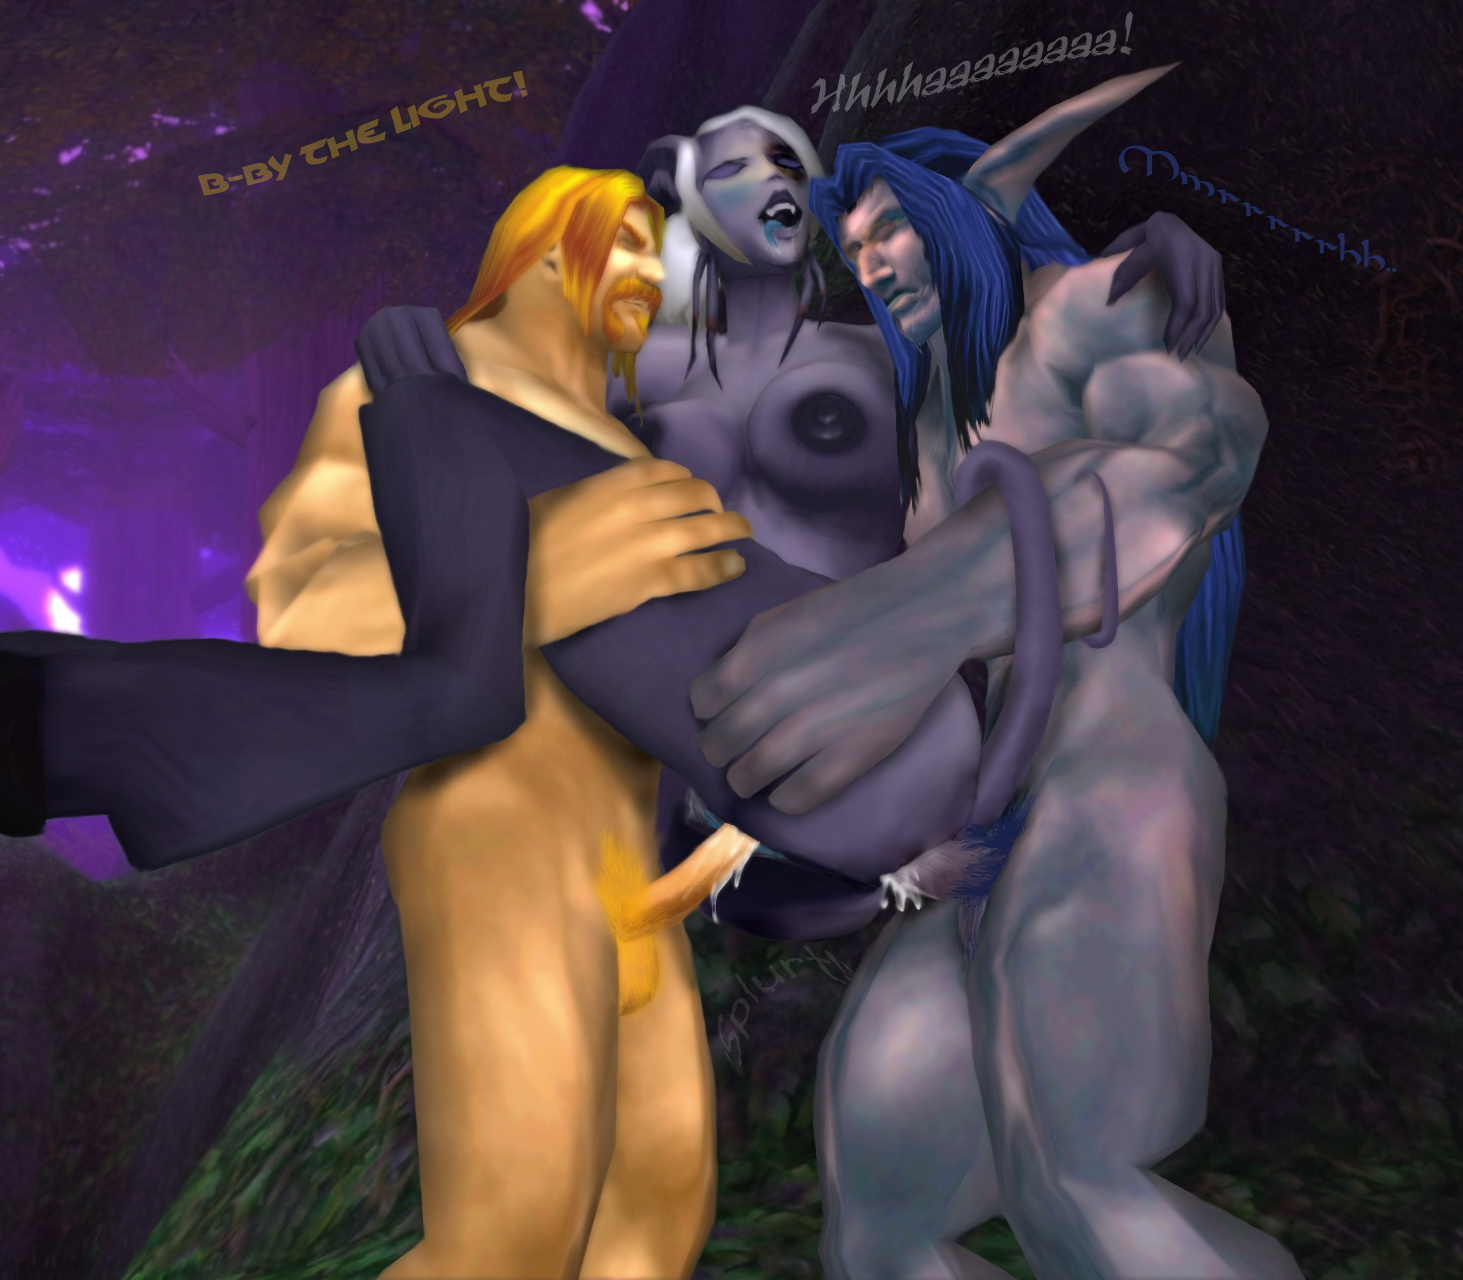 Video game nude mod wow draenei porn photos